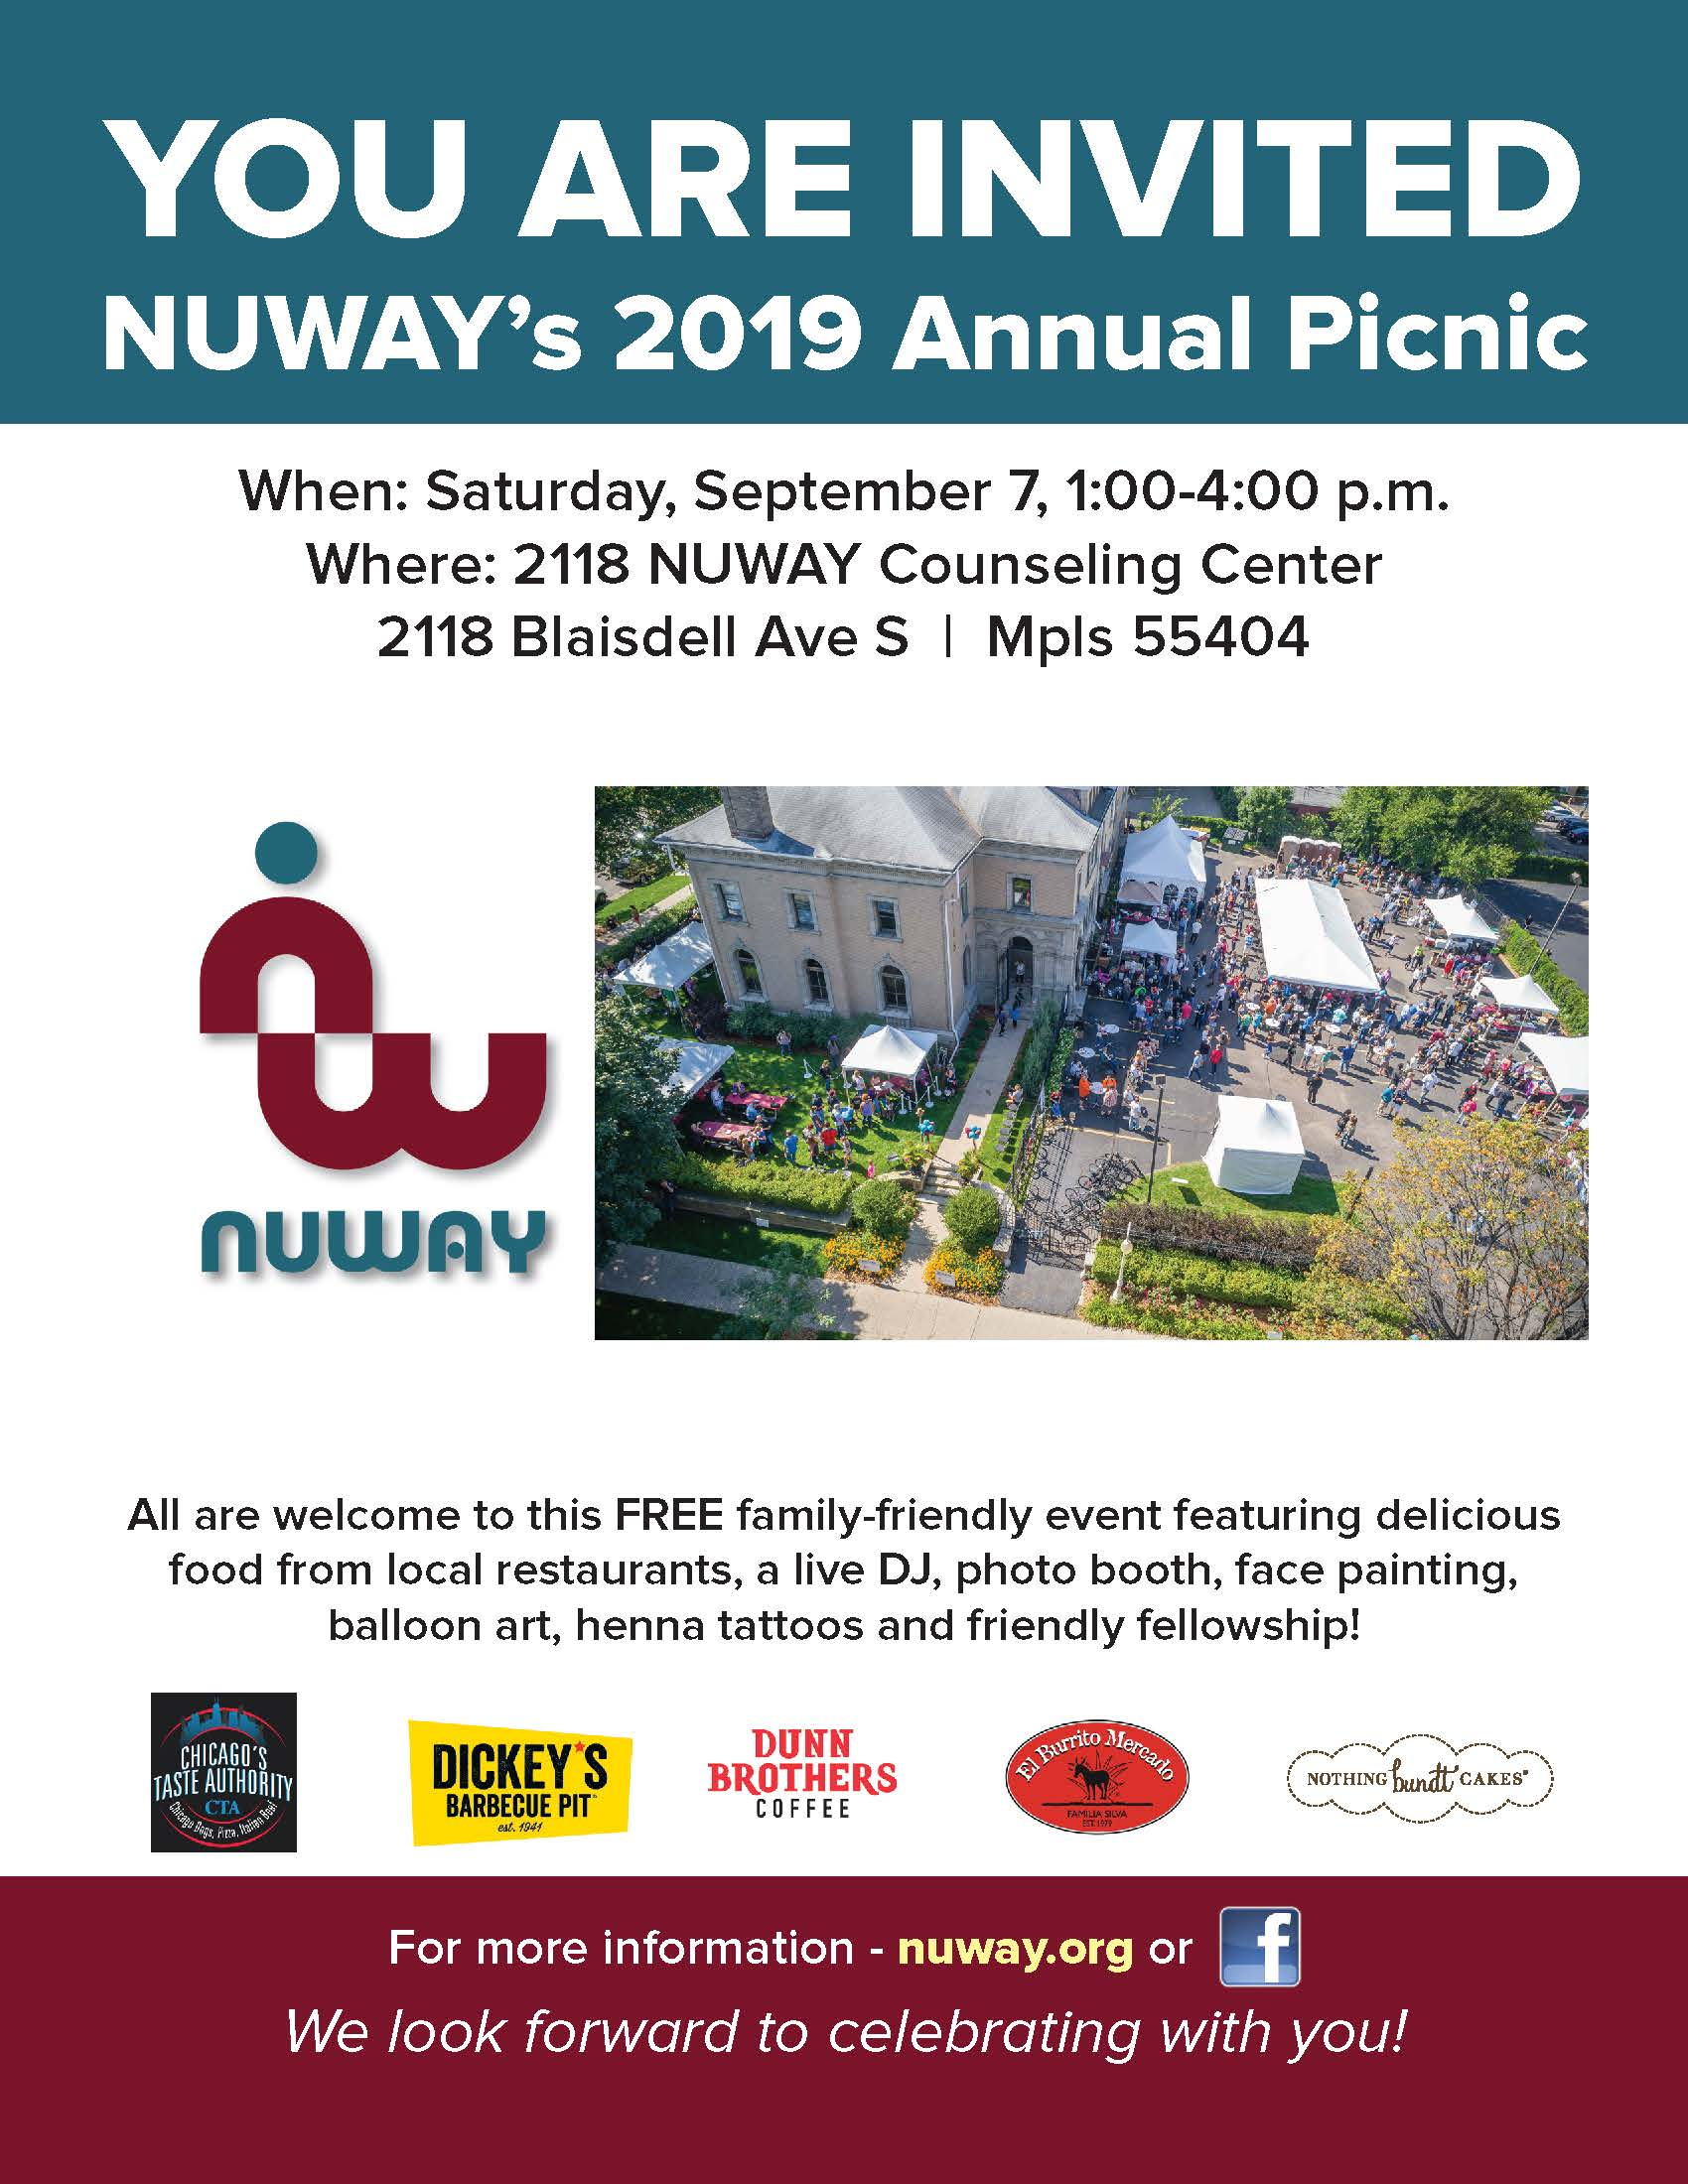 NUWAY annual picnic 2019